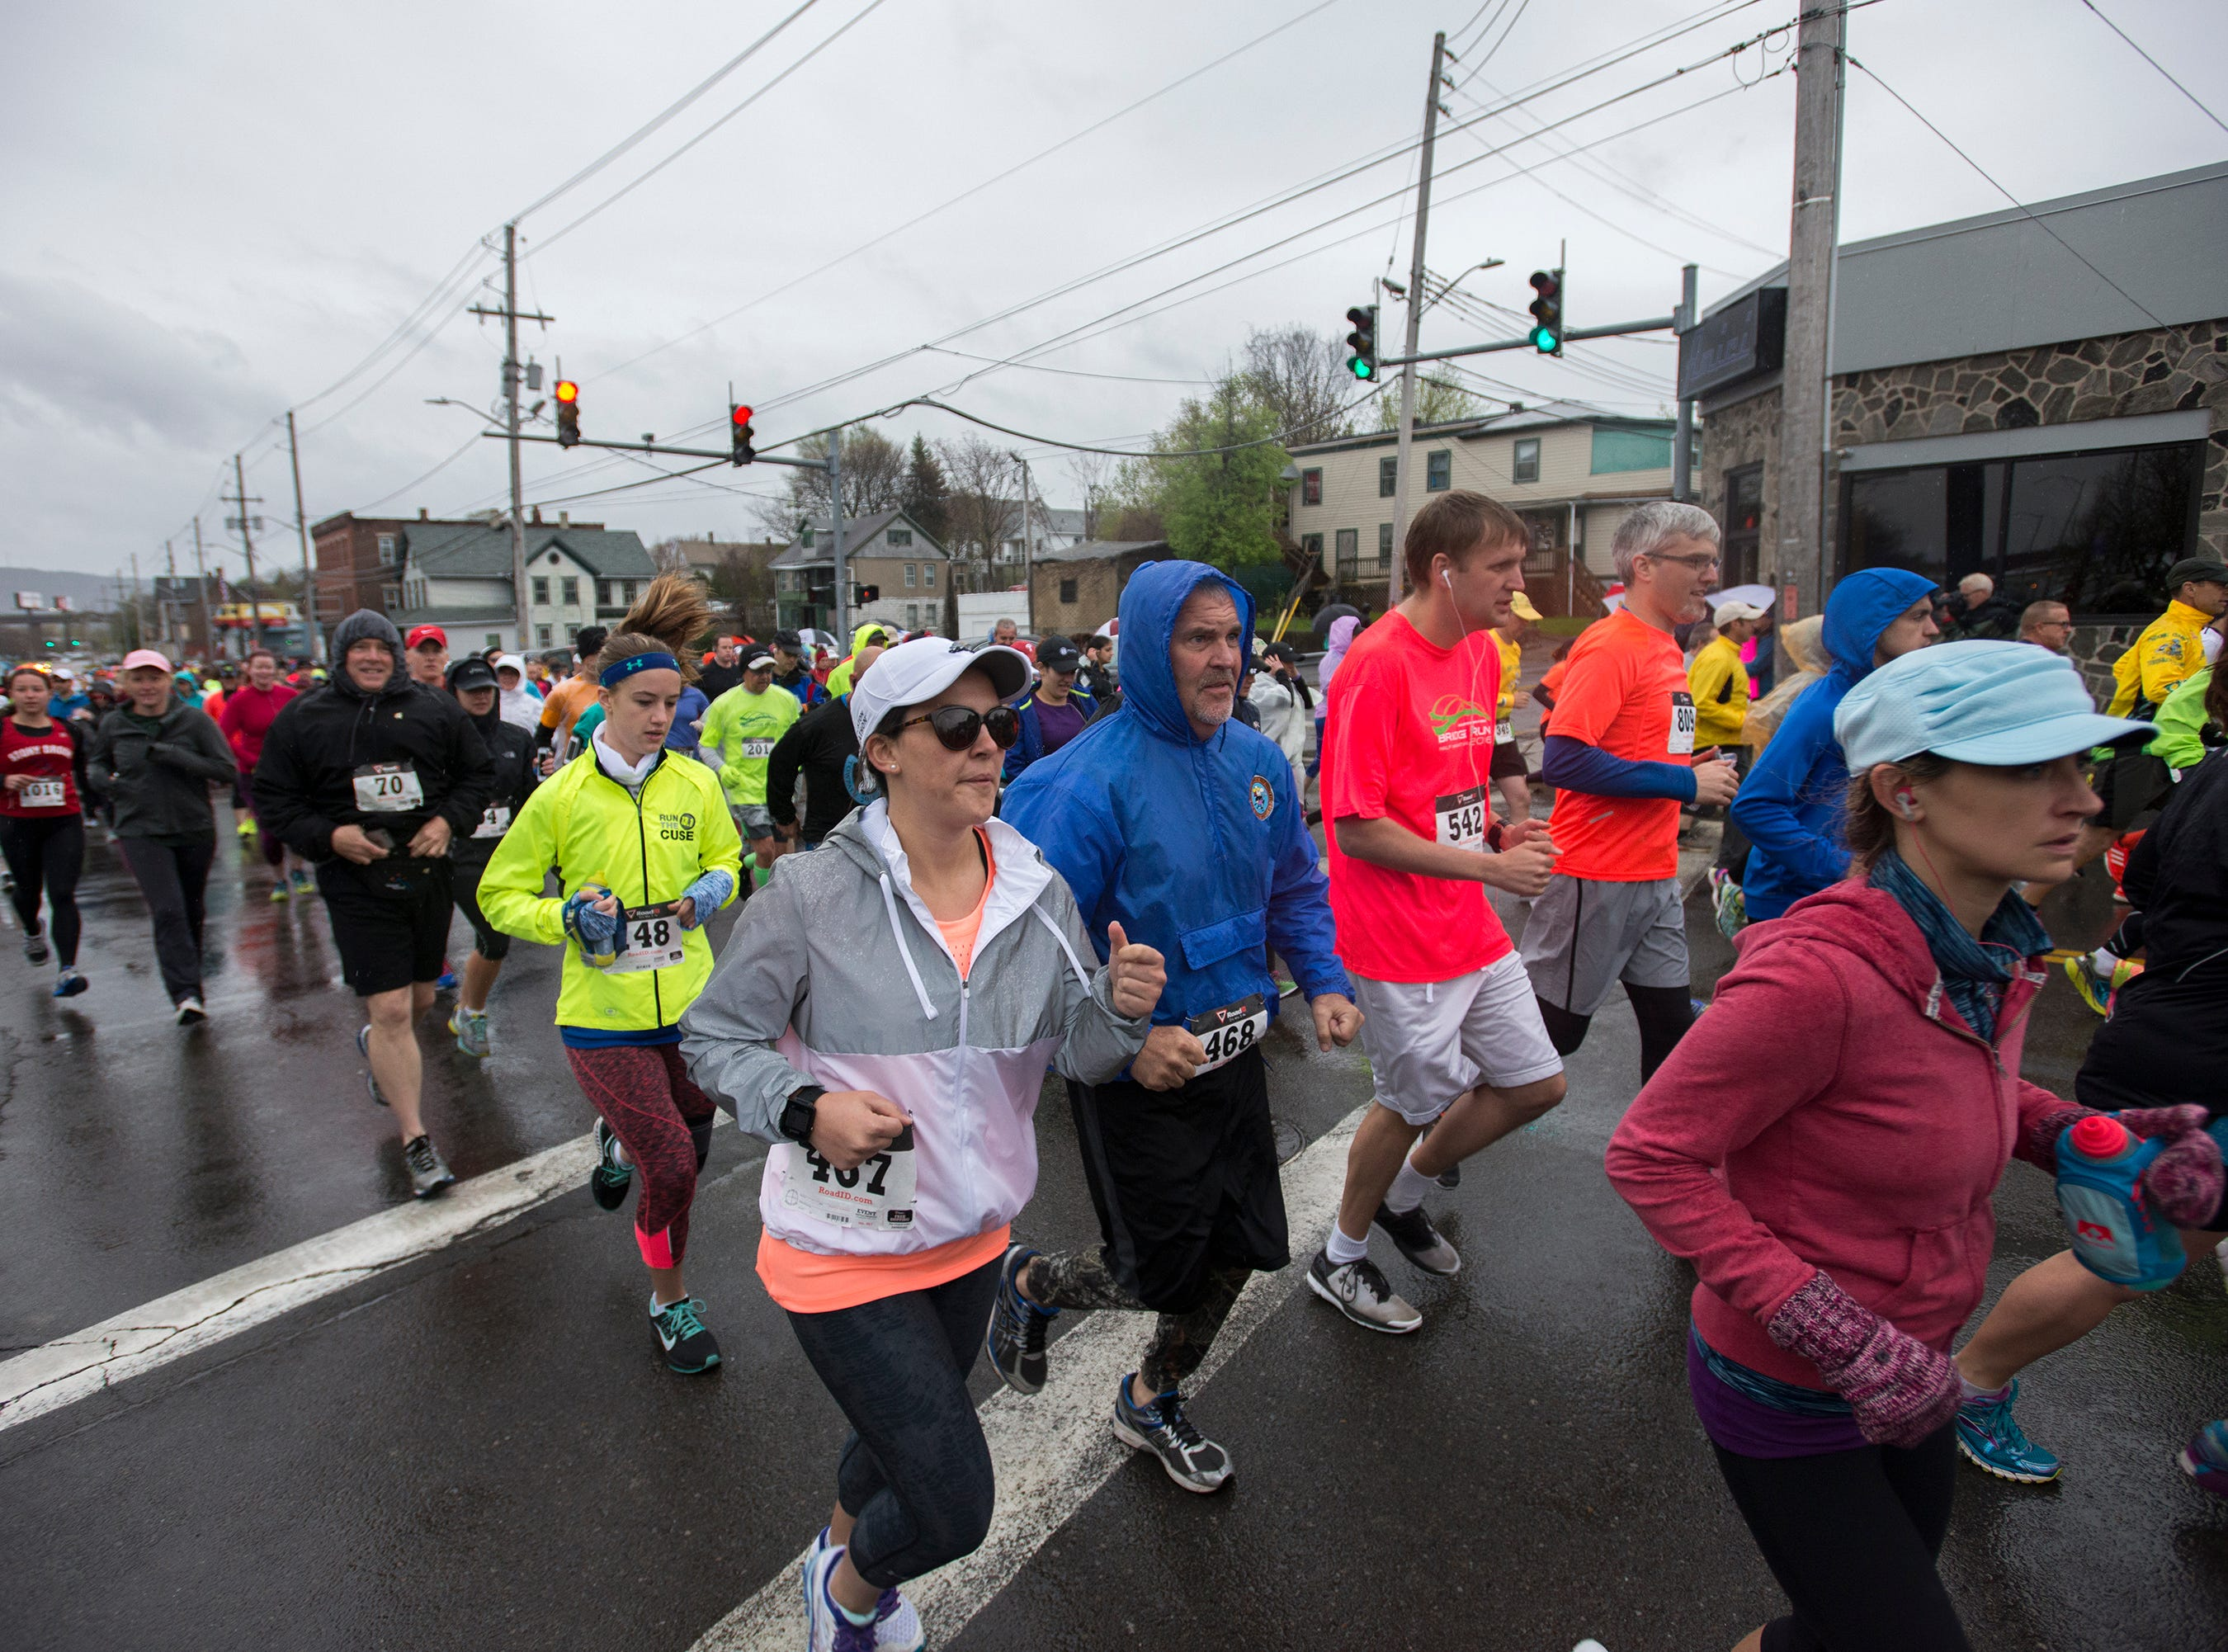 2016: Runners take off at the starting line of the Greater Binghamton Bridge Run half marathon in front of NYSEG Stadium in Binghamton on Sunday, May 1, 2016.